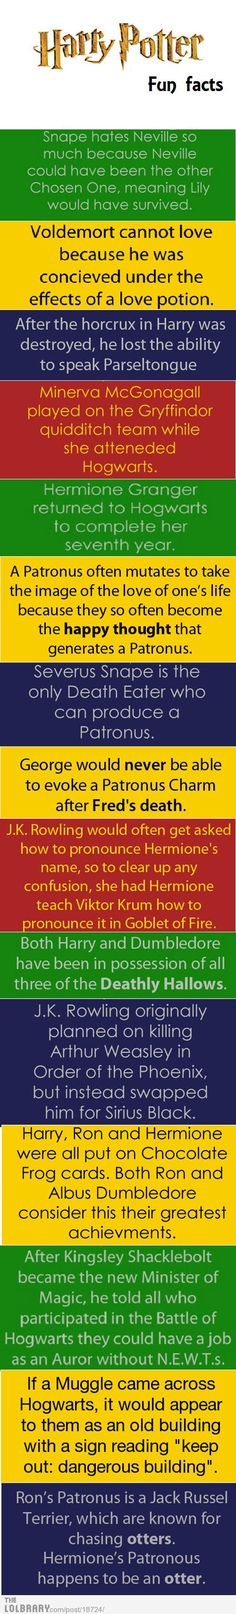 Harry Potter Fun Facts | LOLBRARY.COM